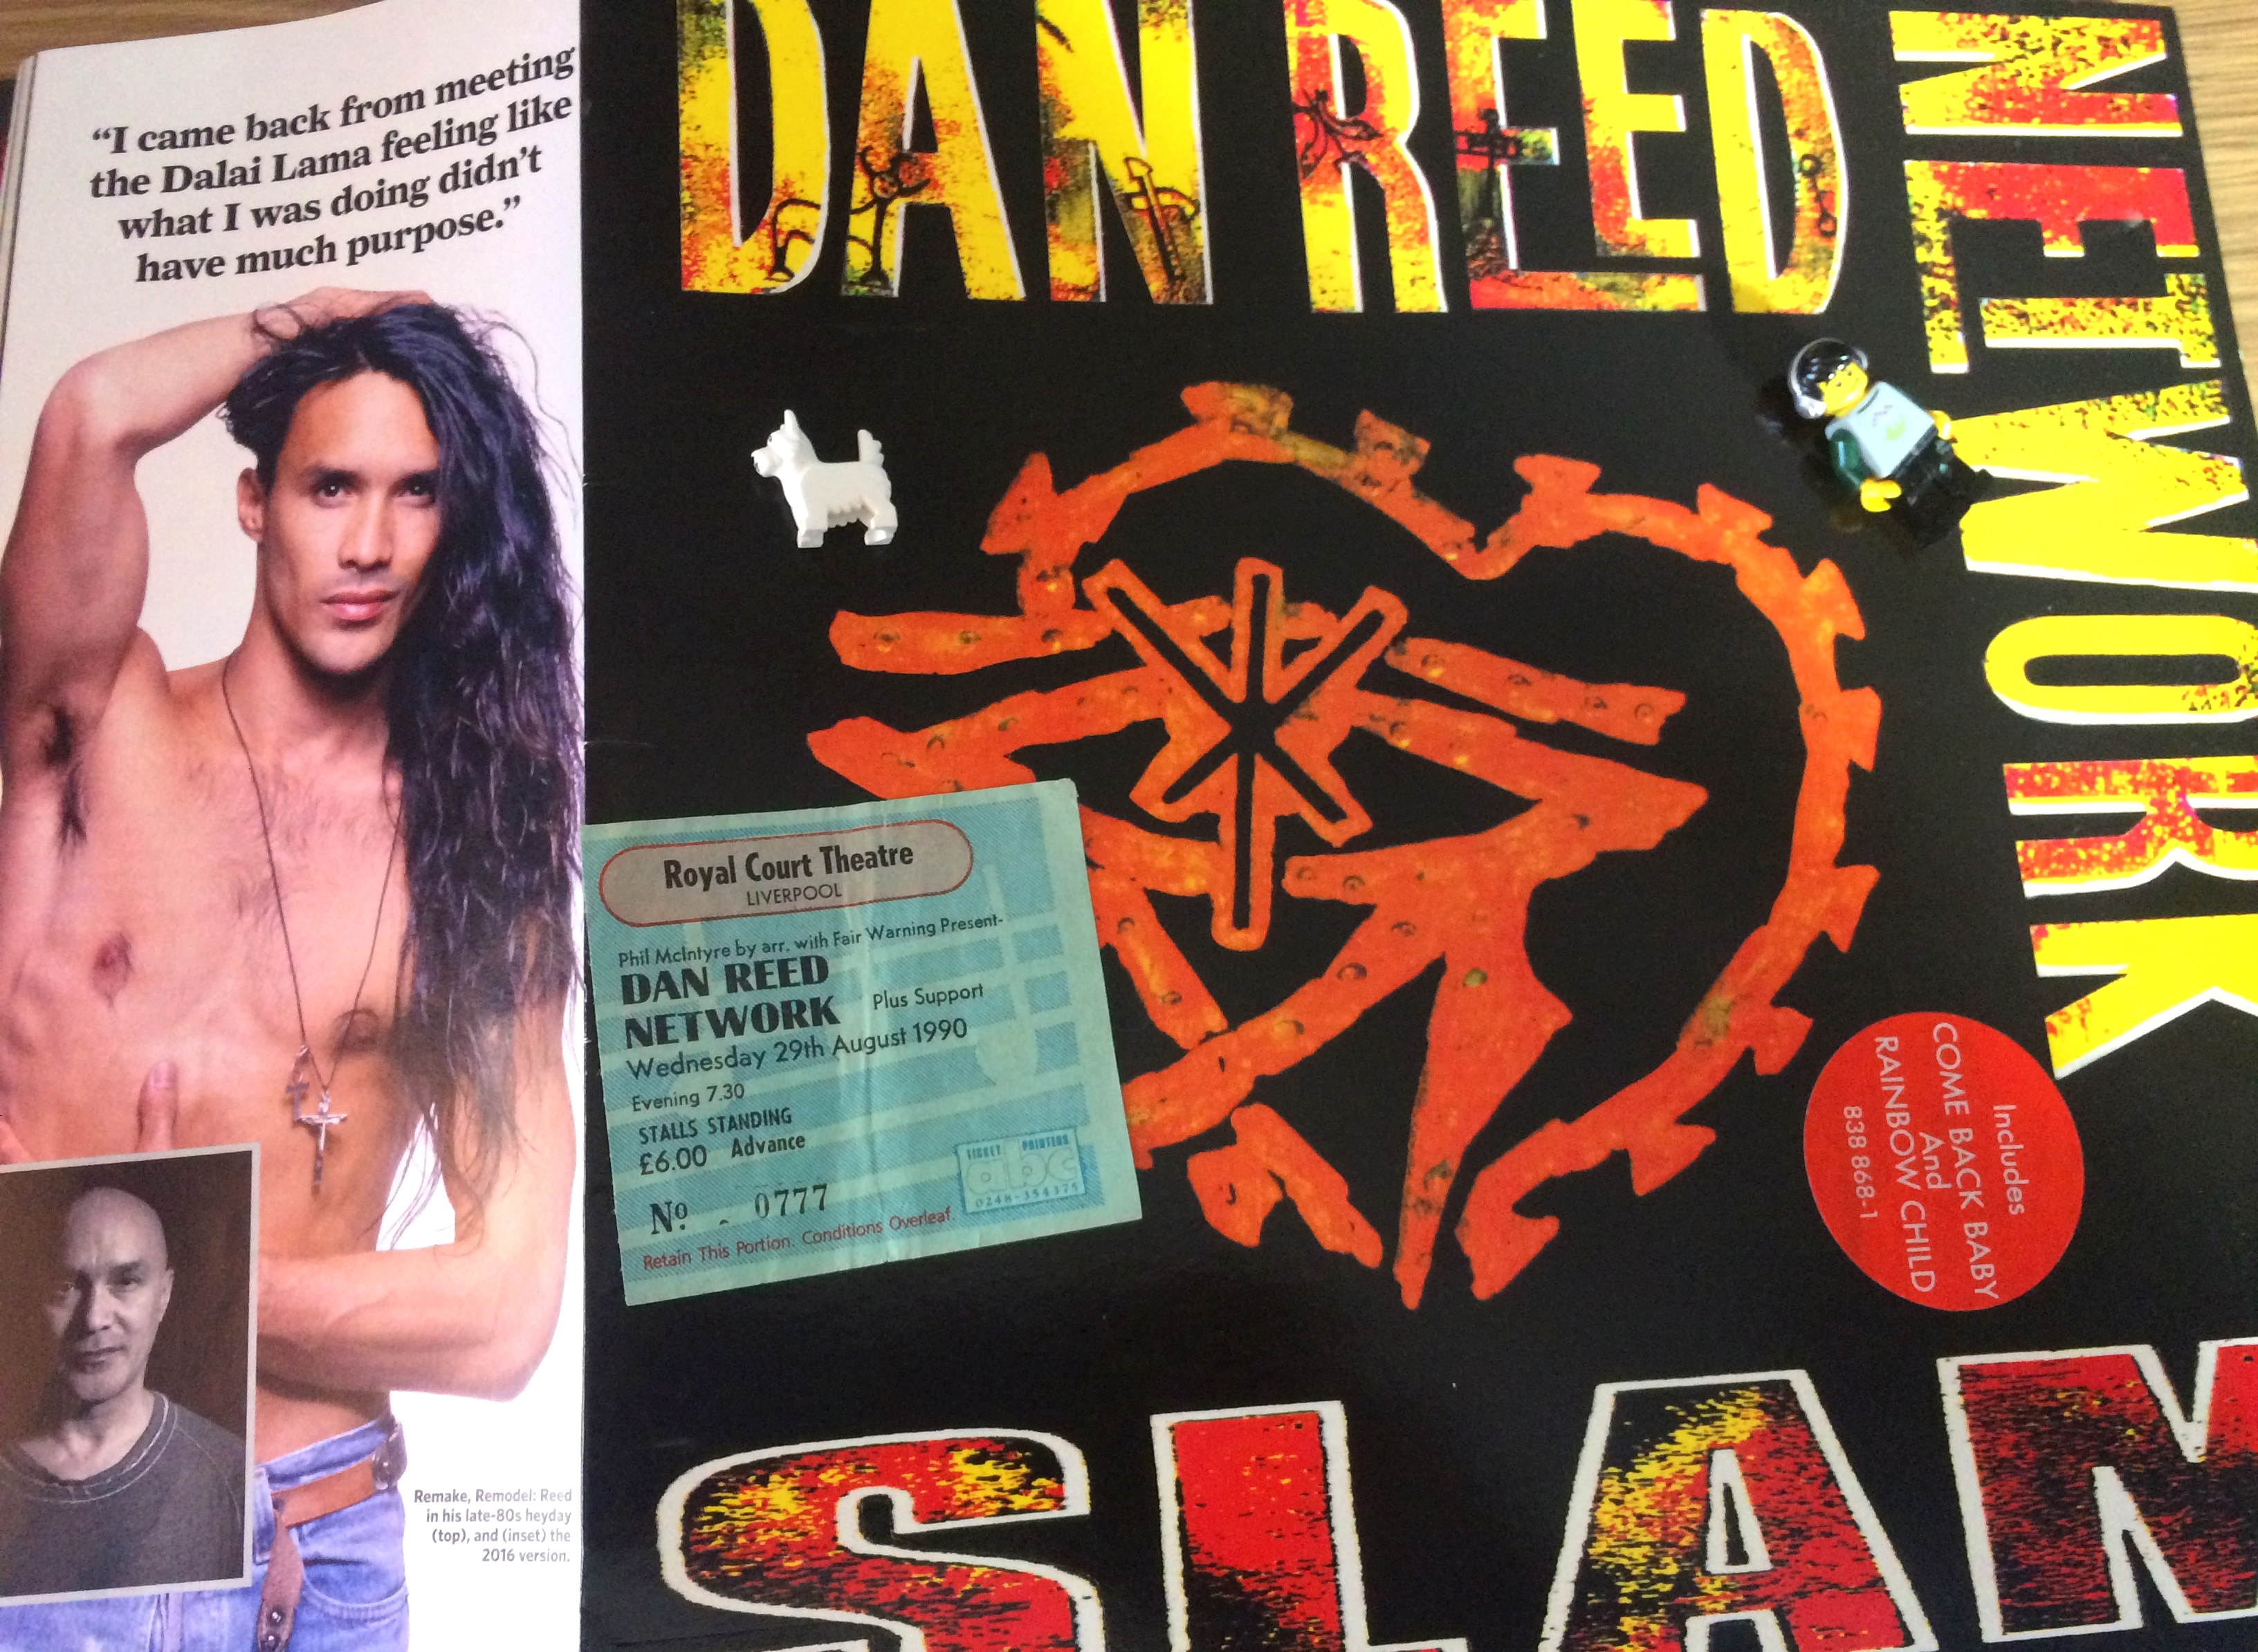 dan-reed-network-slam-07jatstoreydan-reed-network-slam-05-2dan-reed-network-slam-04dan-reed-network-slam-03dan-reed-network-slam-06My theory as to why they didn't make it? his nipples are too hairy. They lose 1537 bonus points for the annoying lyric pictogramsdan-reed-network-slam-01